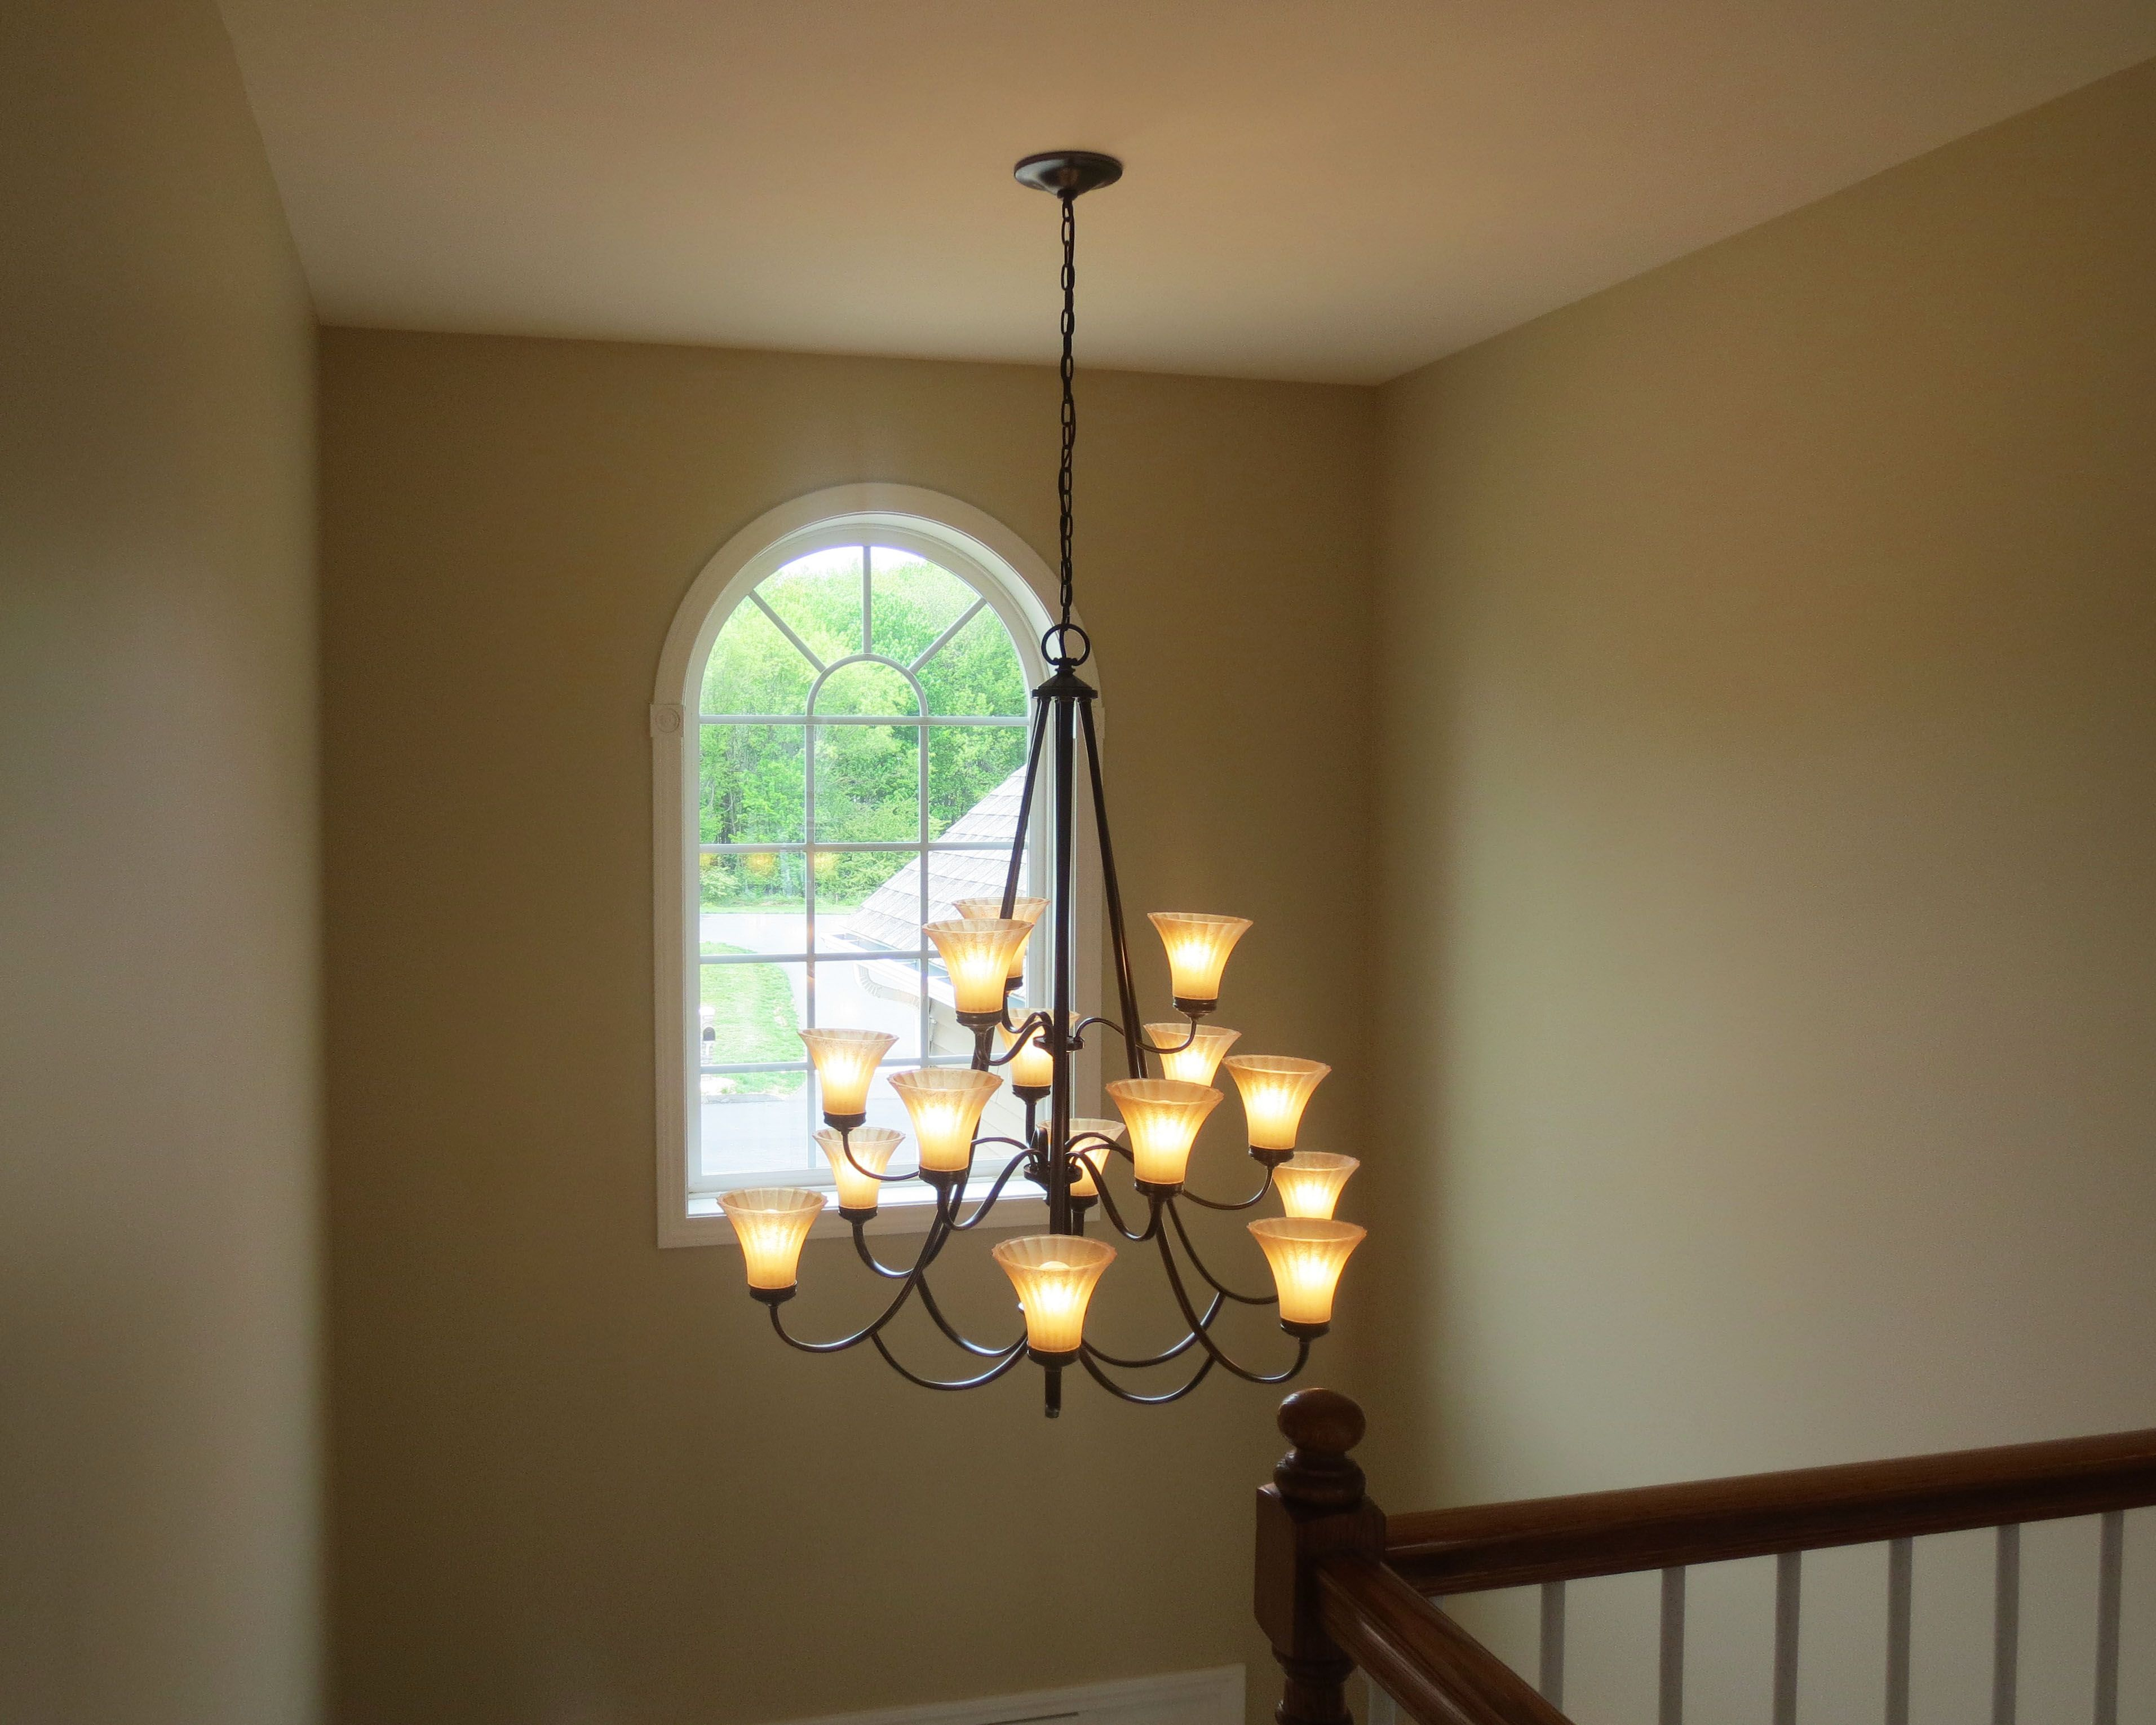 Image of foyer chandeliers clearance large chandeliers image of foyer chandeliers clearance aloadofball Images